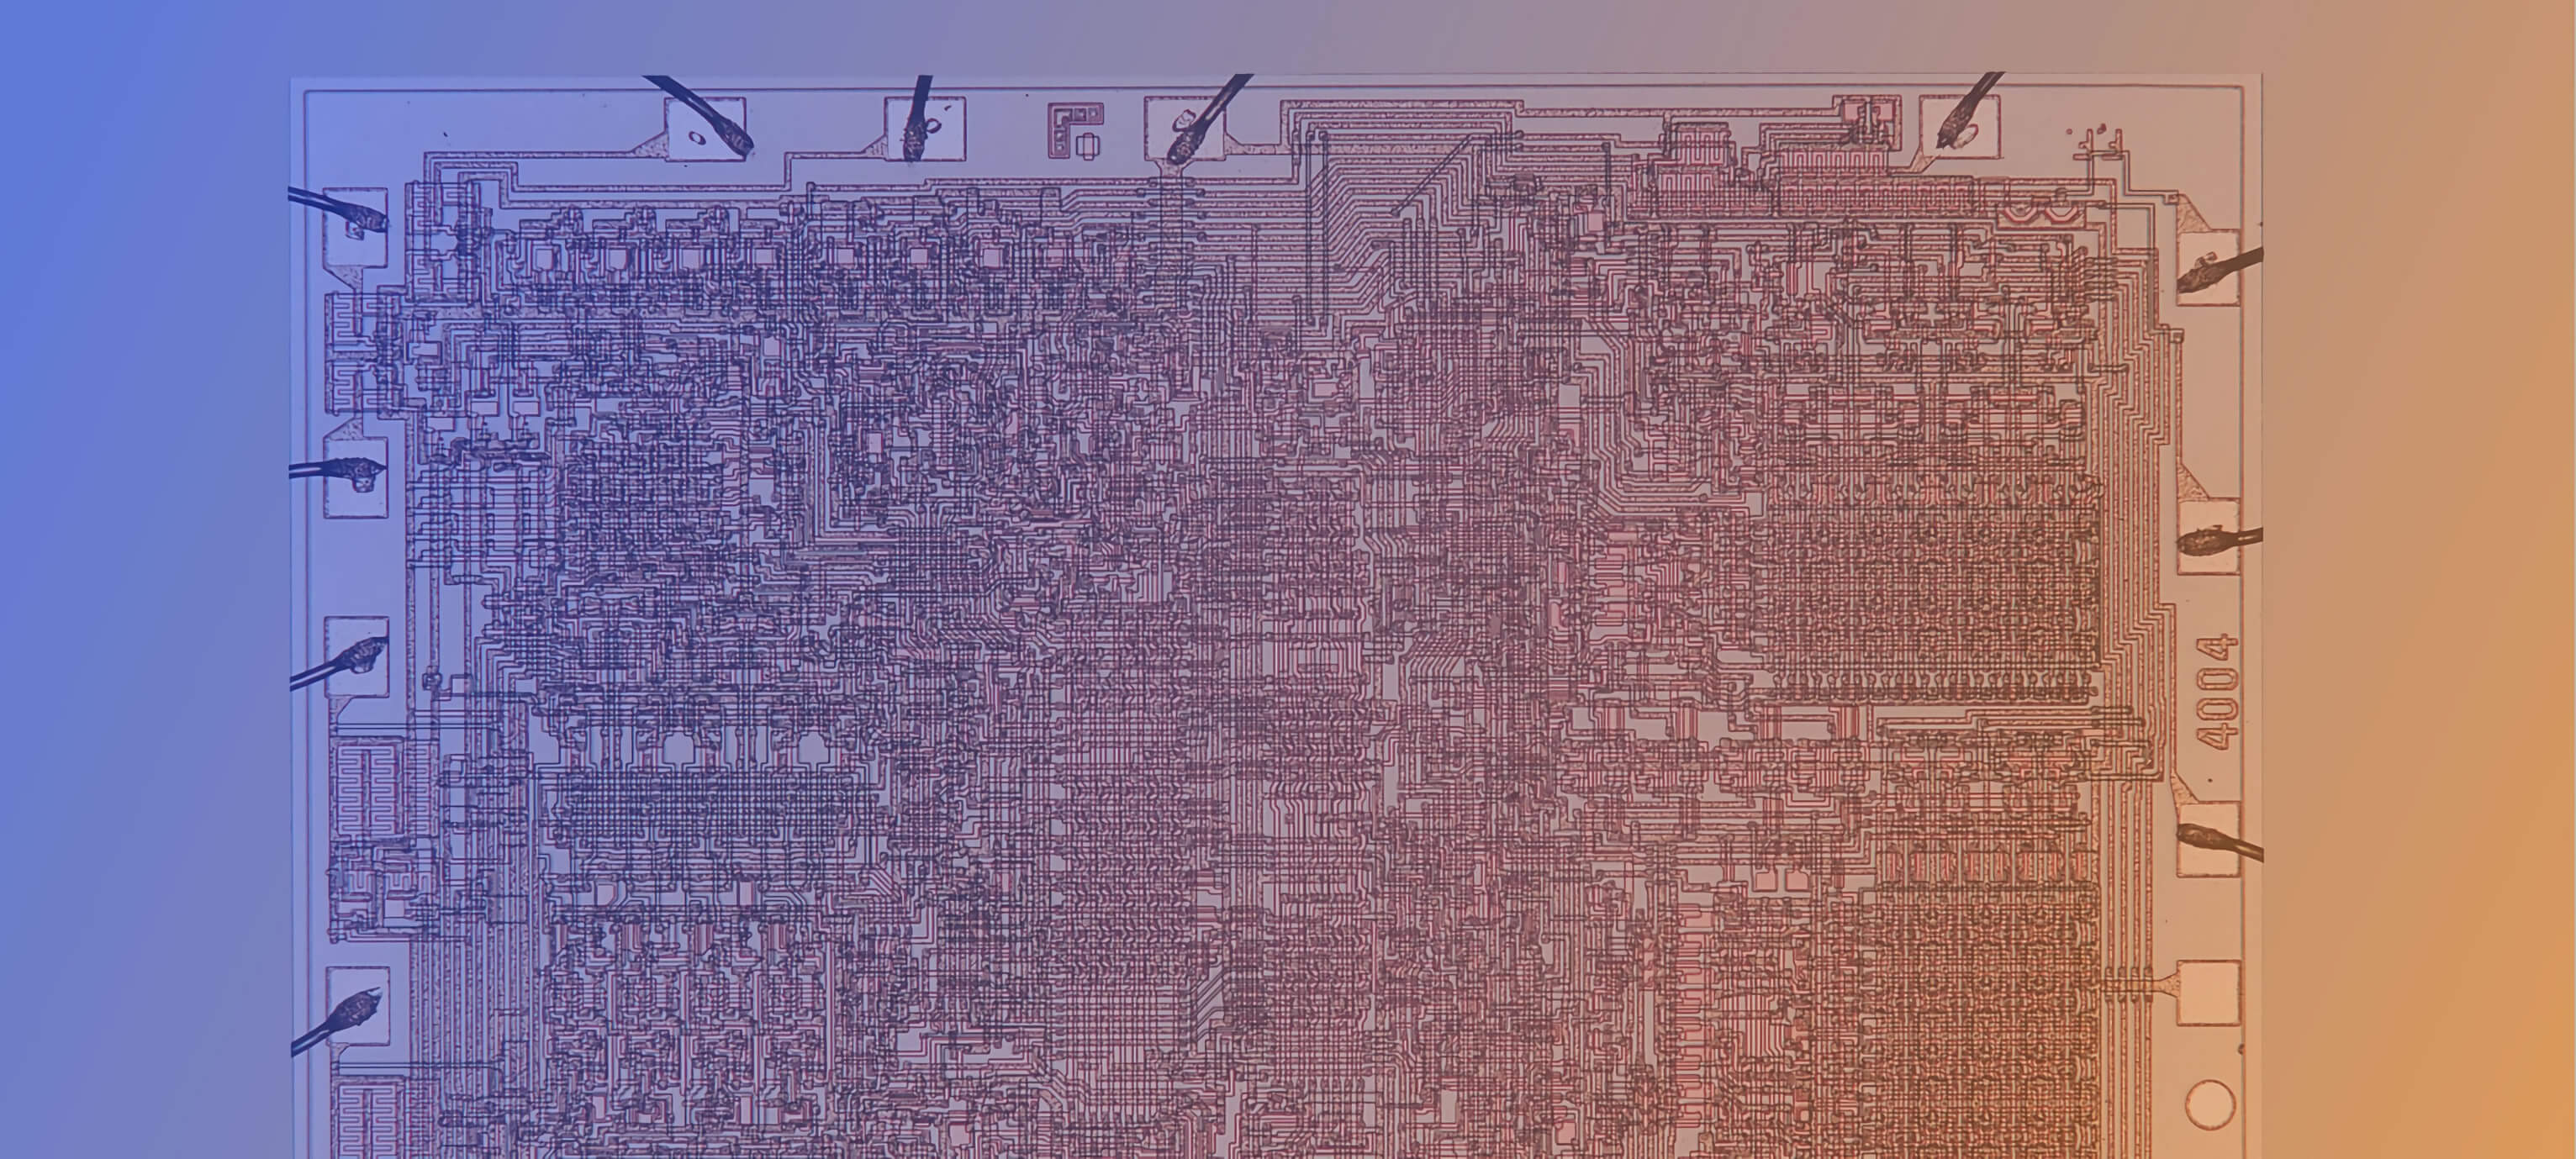 The History of the Microprocessor and the Personal Computer